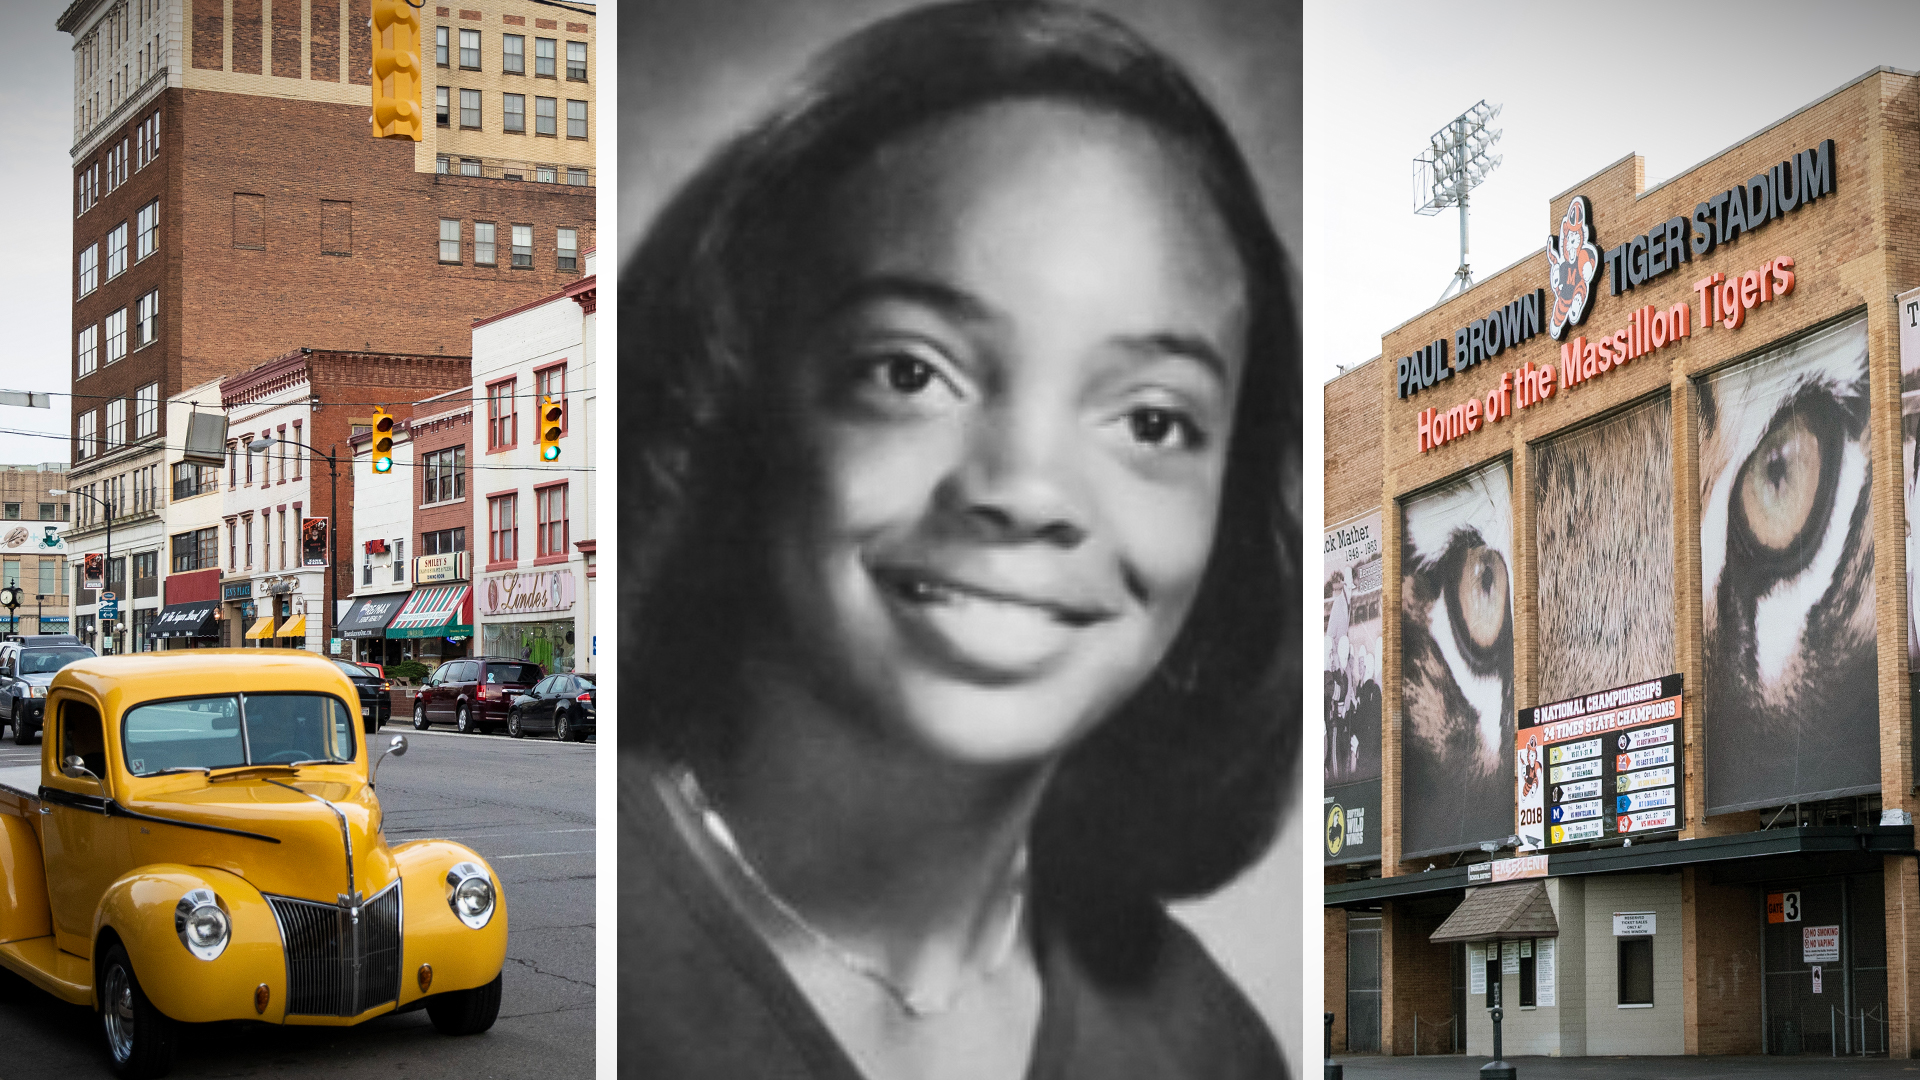 A view of Lincoln Way E in downtown Massillon, Ohio. | Lori Lightfoot's 1980 senior yearbook photo from Washington High School. | Washington High School's Paul Brown Tiger Stadium. | Photos by Ashlee Rezin/Sun-Times; Illustration by Brian Ernst/Sun-T